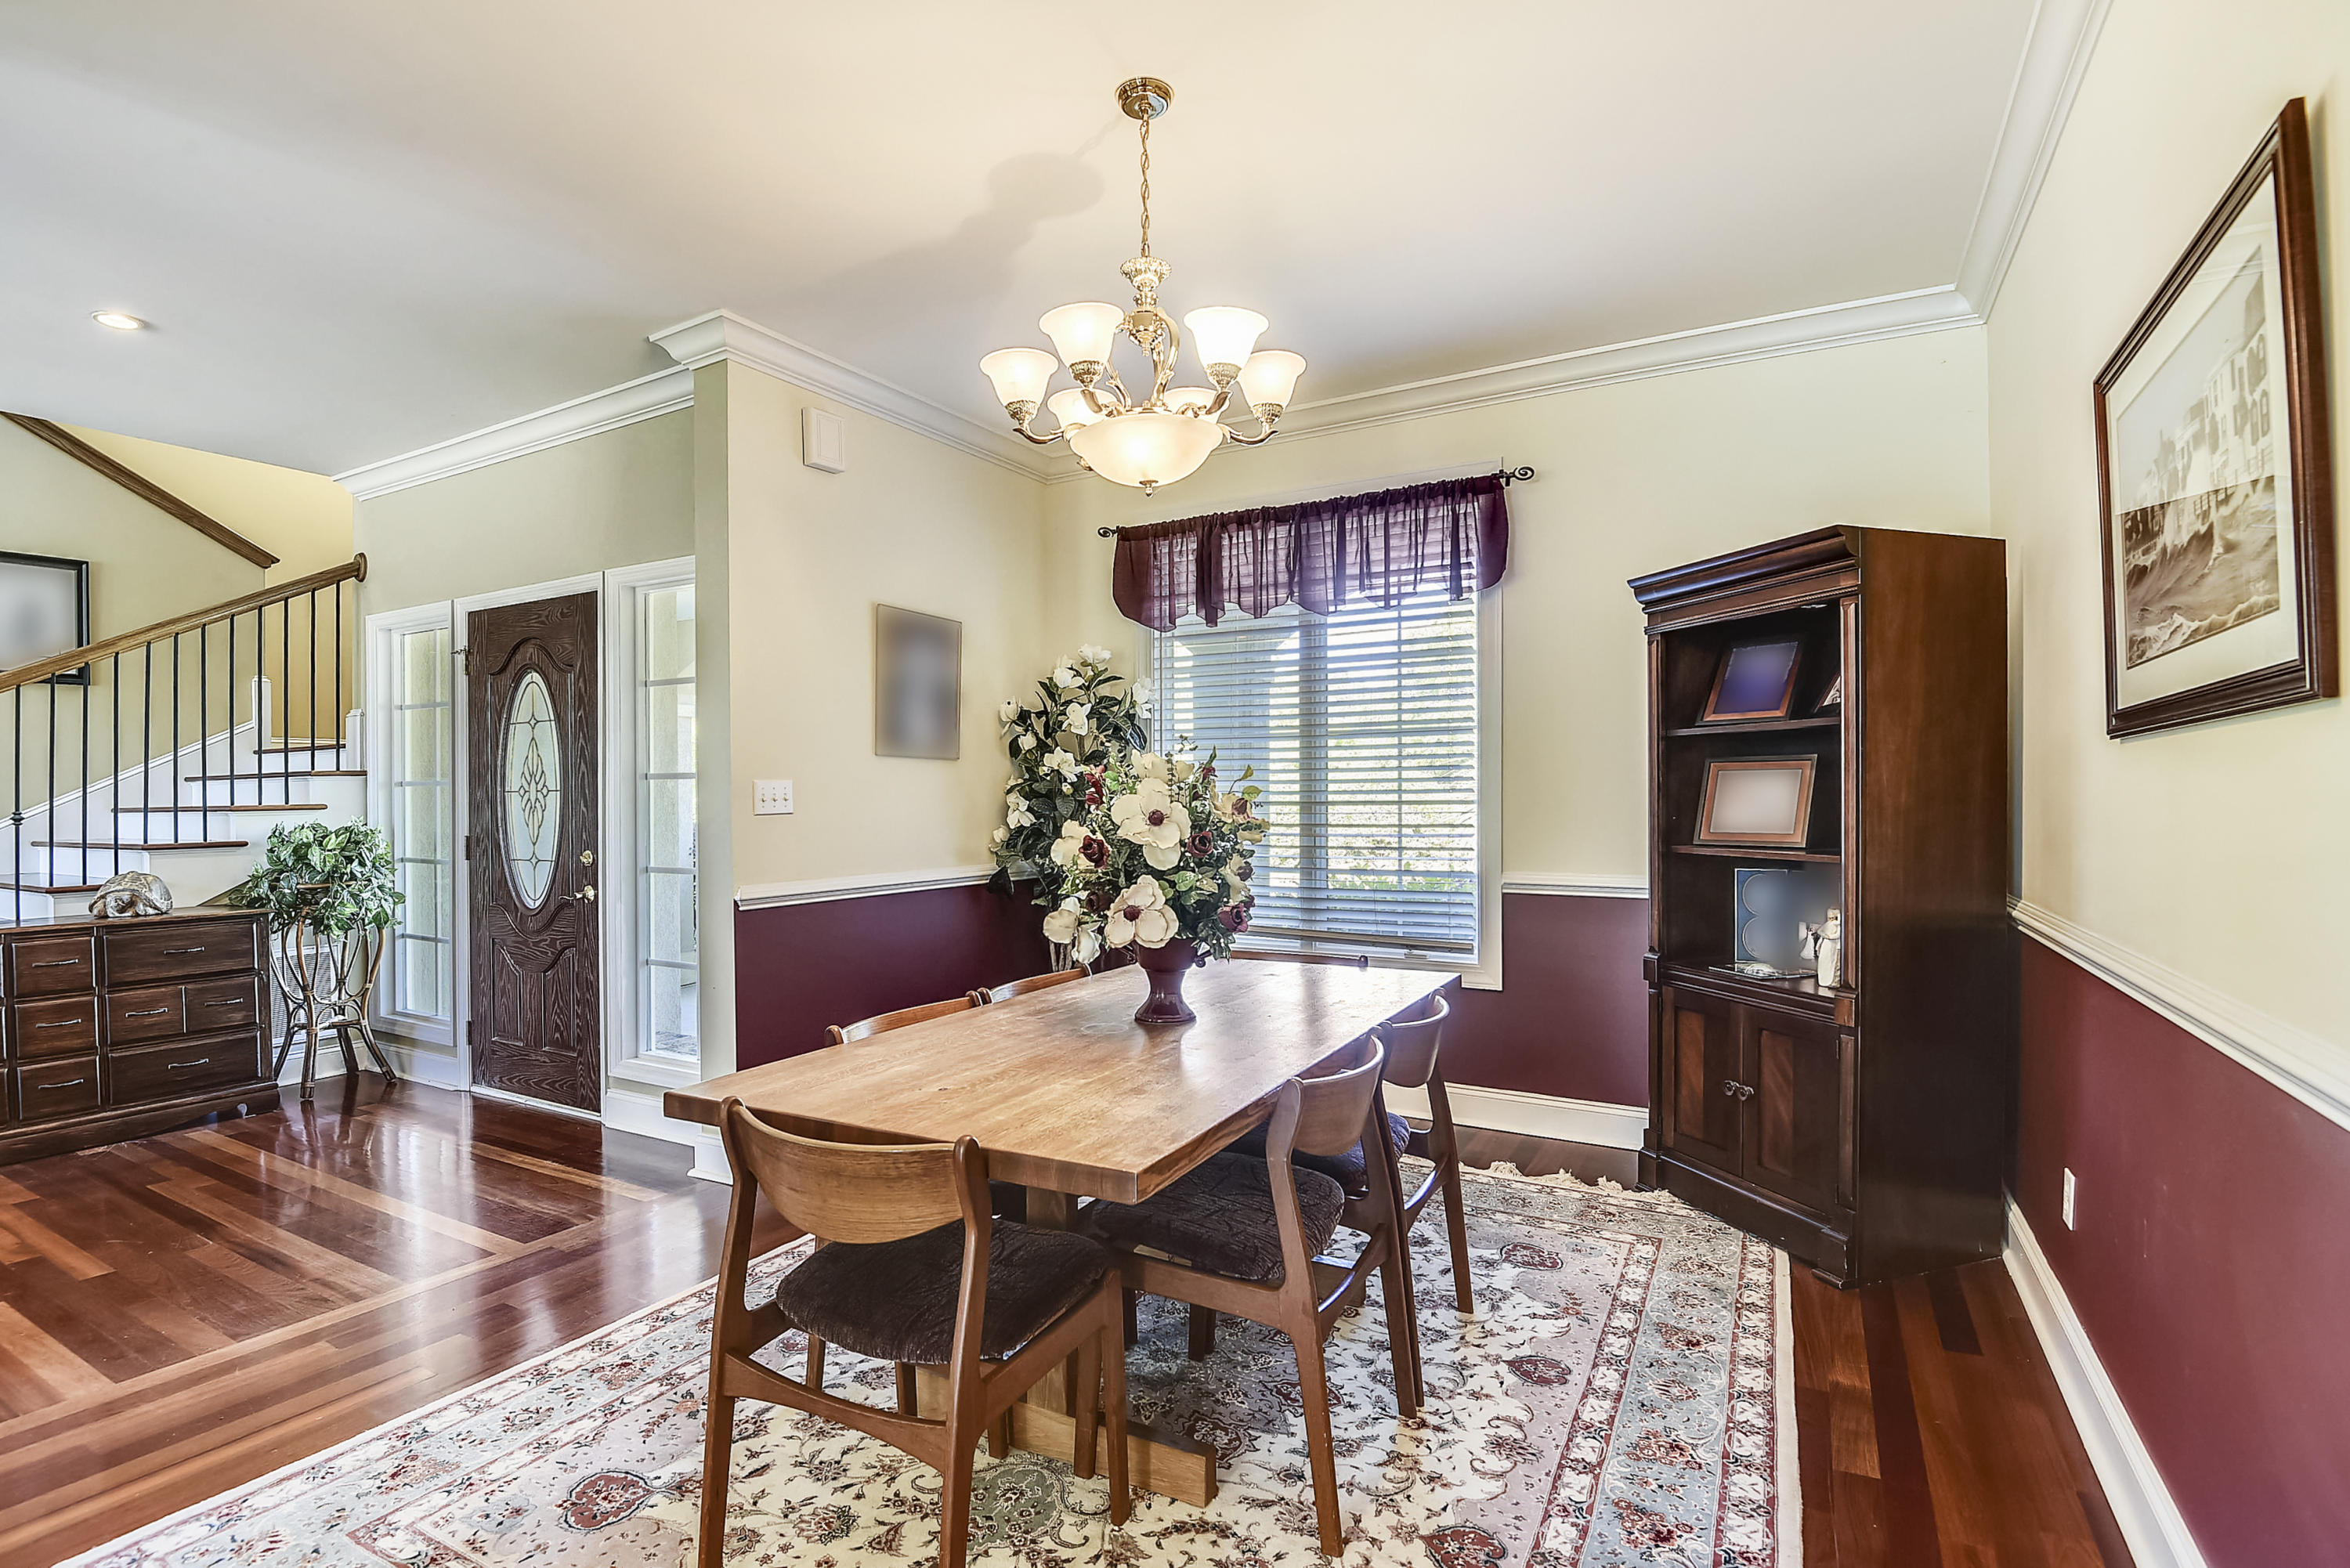 Coosaw Creek Country Club Homes For Sale - 8855 Fairway Woods, North Charleston, SC - 69